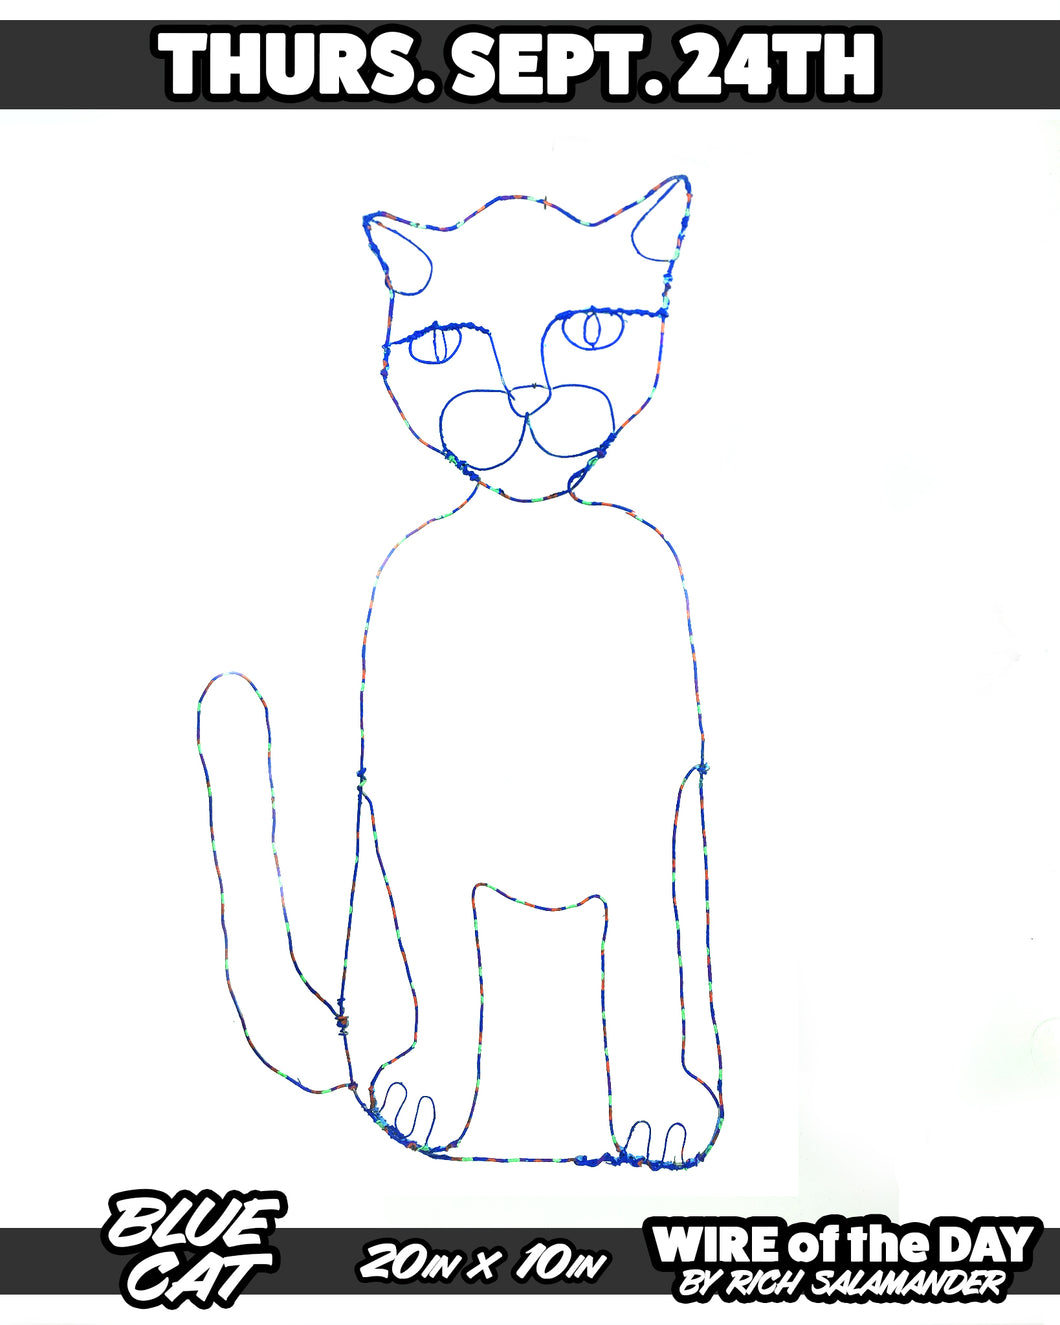 WIRE of the DAY BLUE CAT